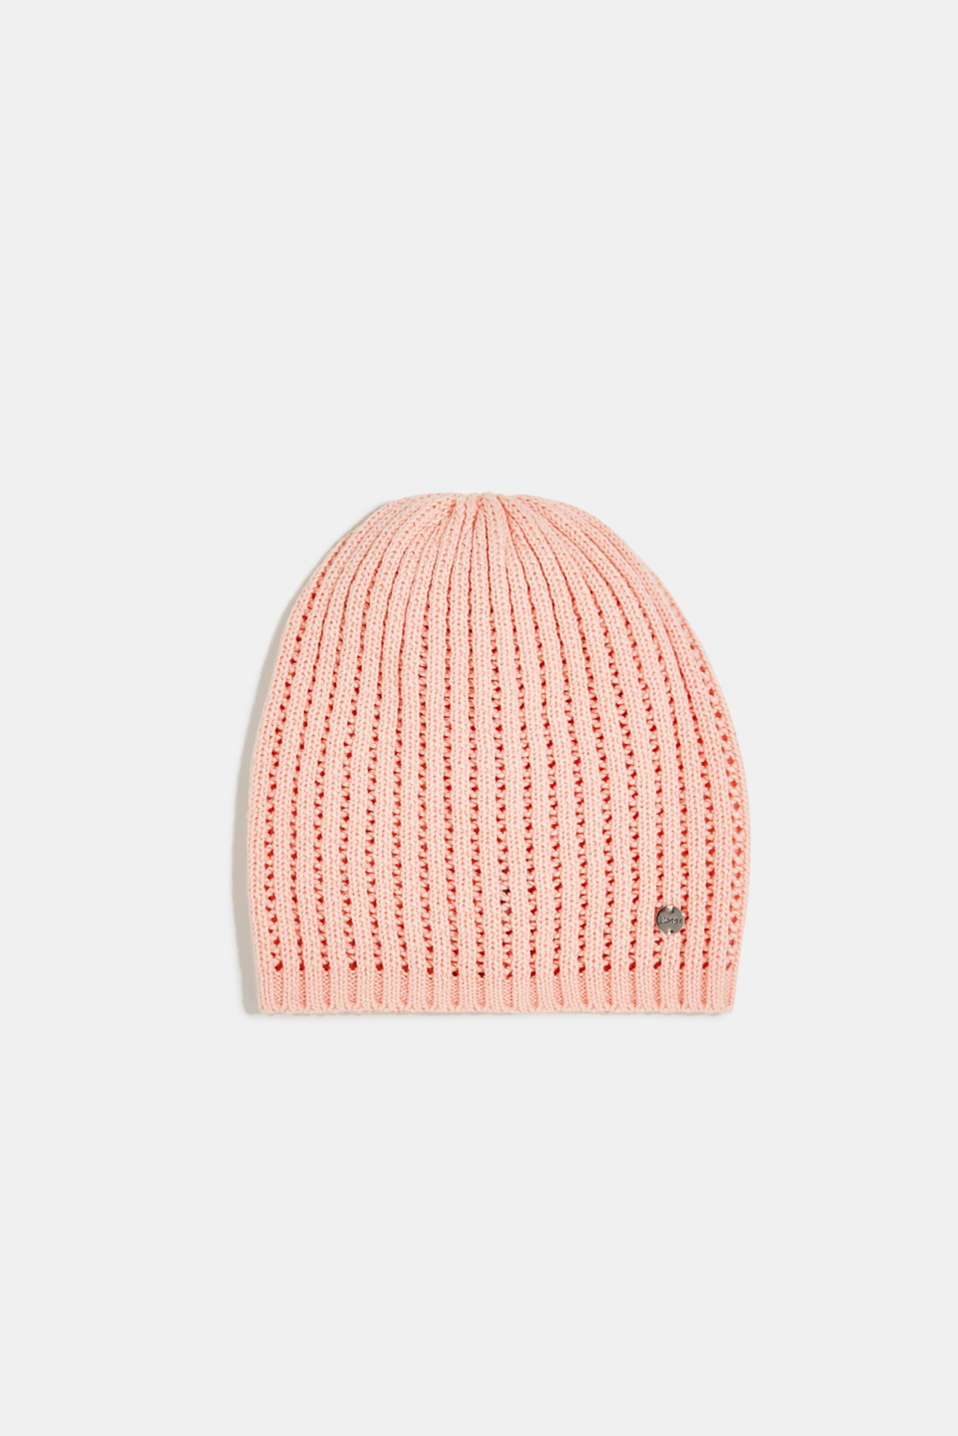 Esprit - 100% cotton hat with a knit pattern